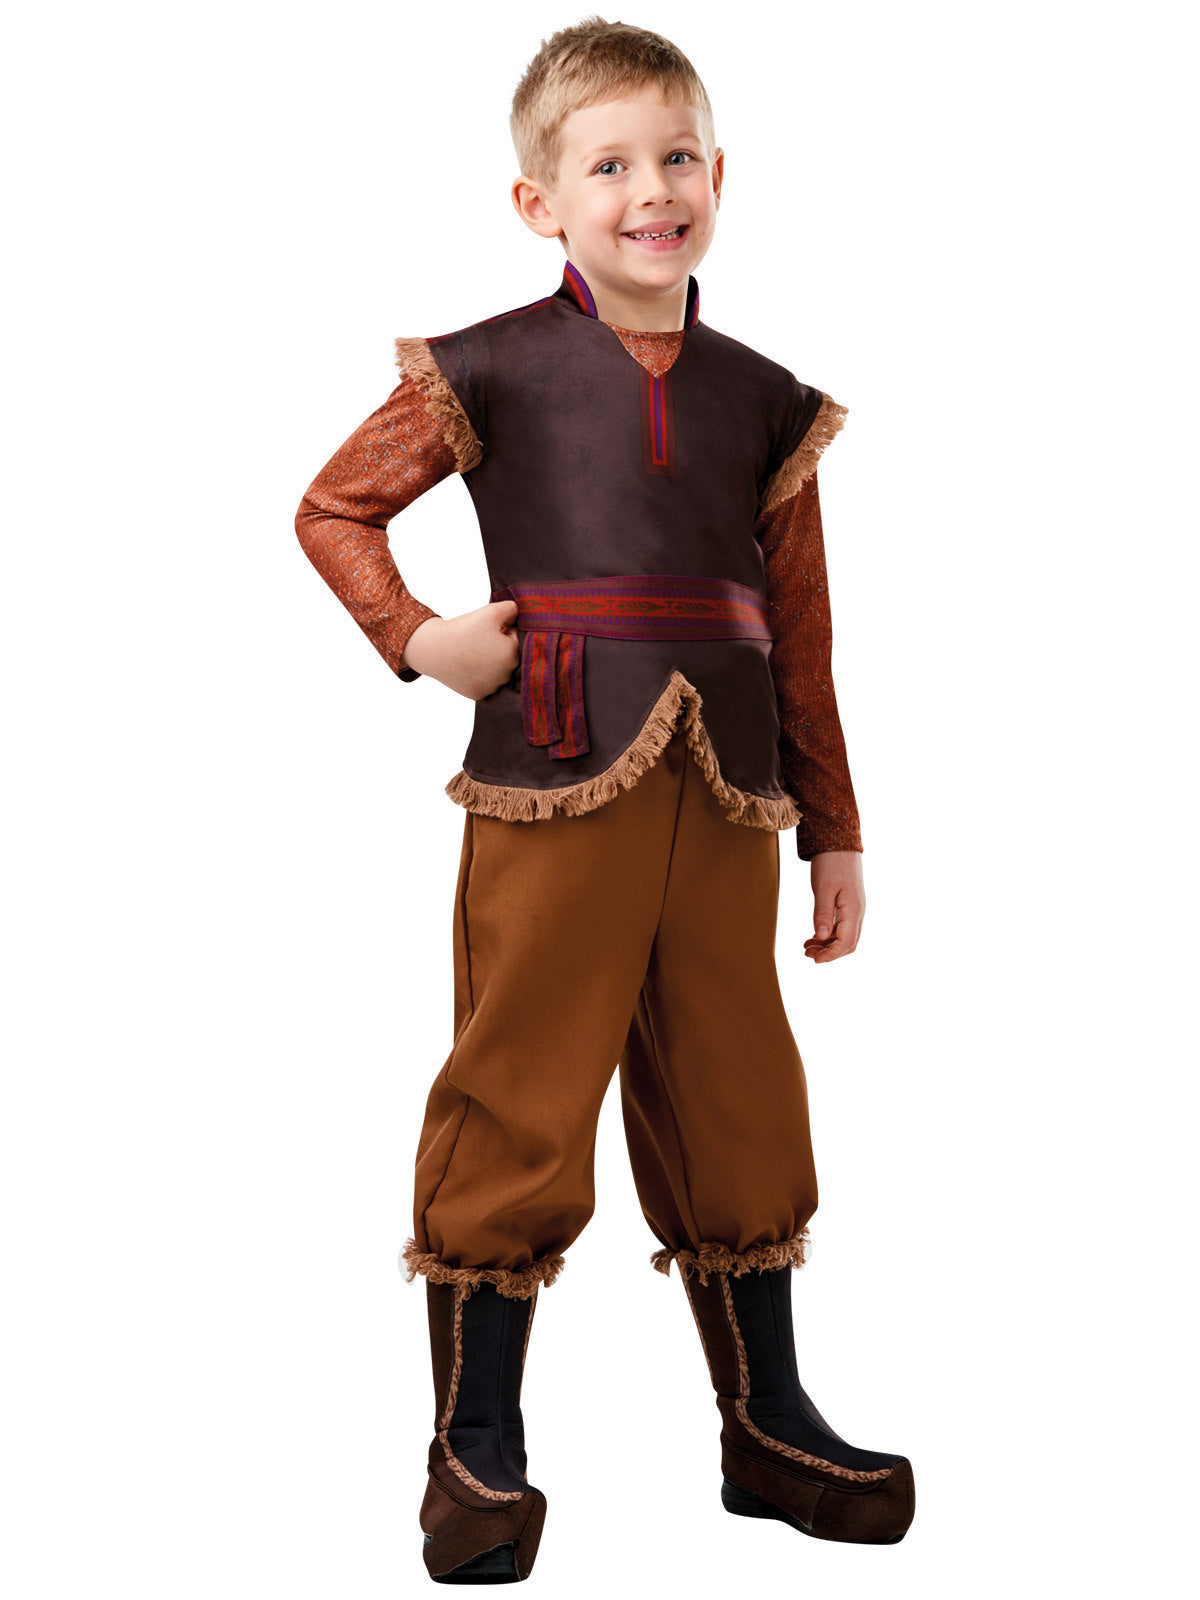 Kristoff Frozen 2 Deluxe Child Costume - Buy Online Only